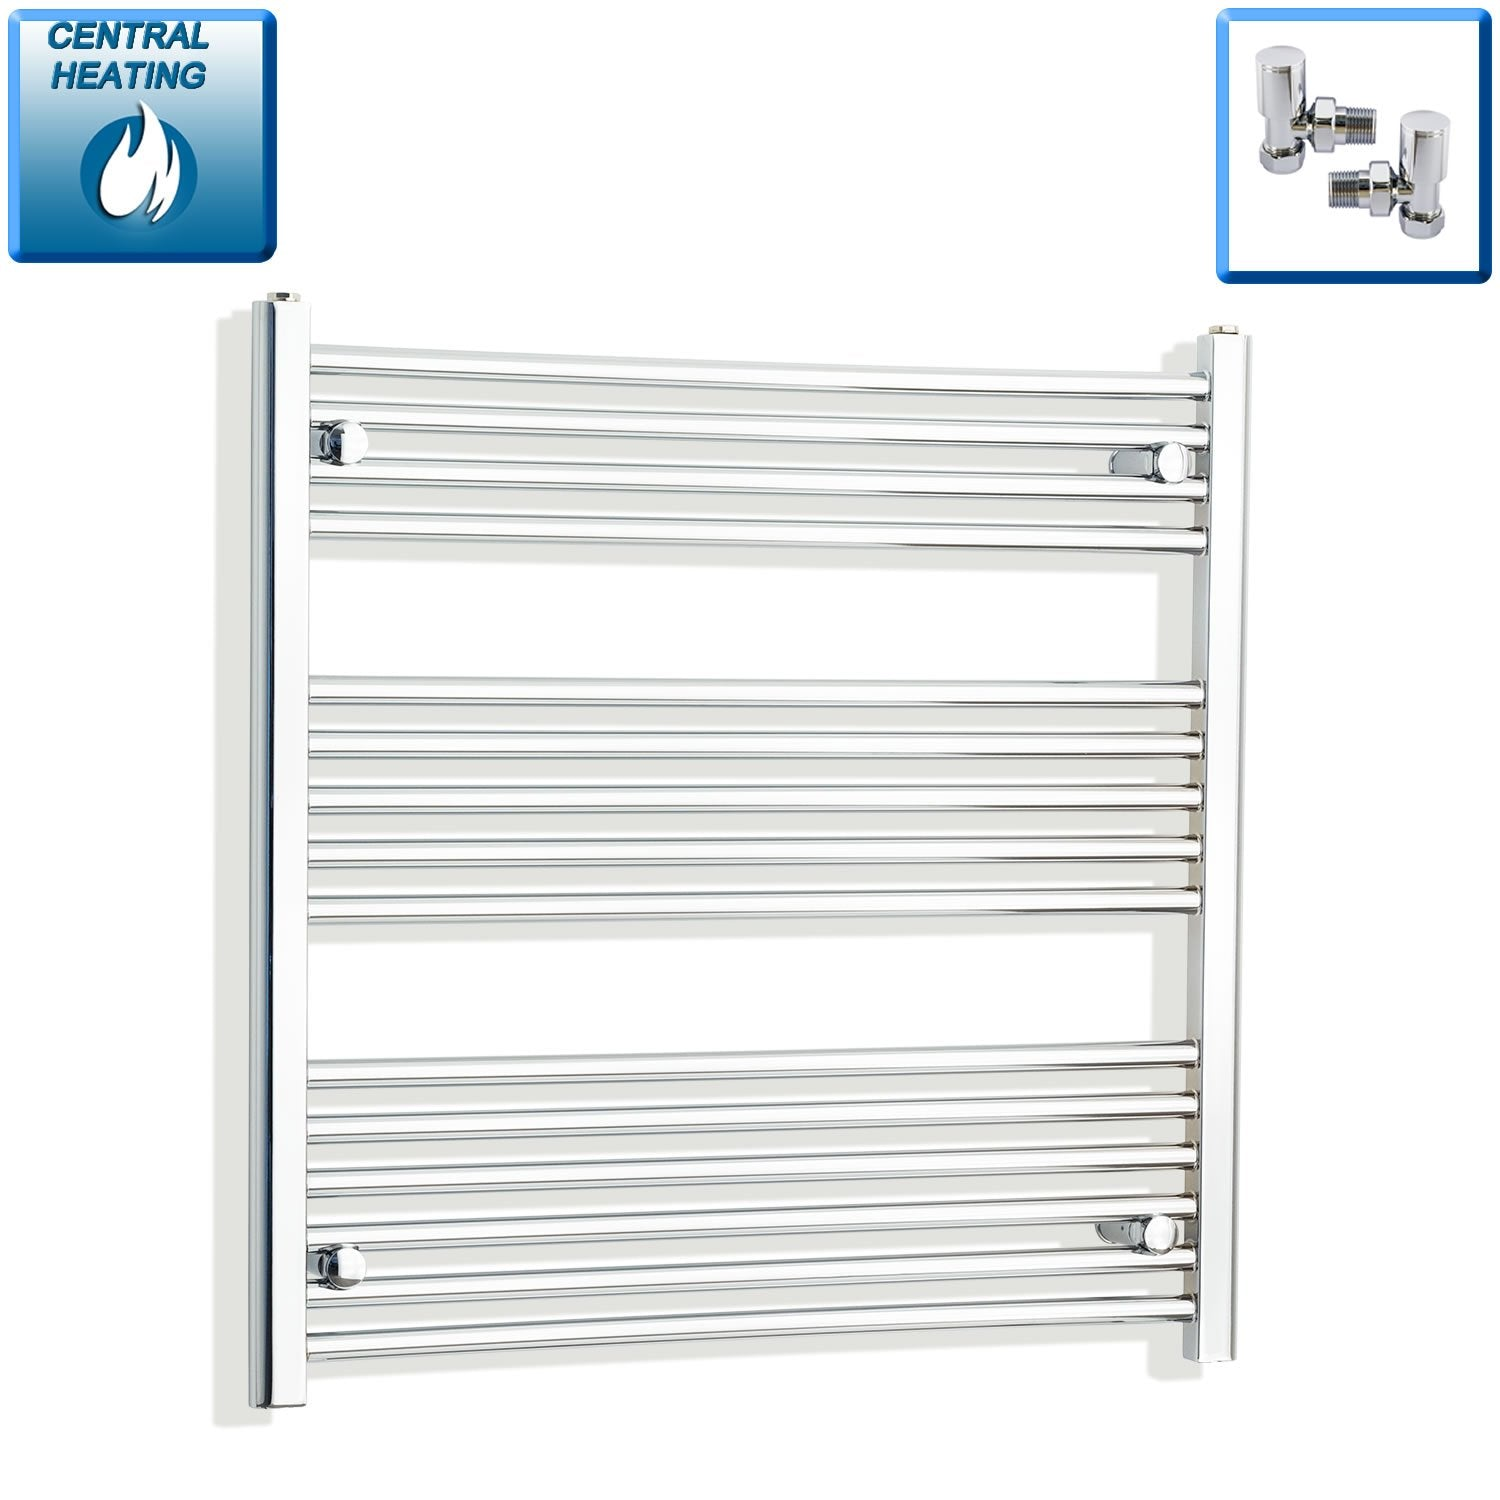 750mm Wide 800mm High Curved Chrome Heated Towel Rail Radiator HTR,With Angled Valve